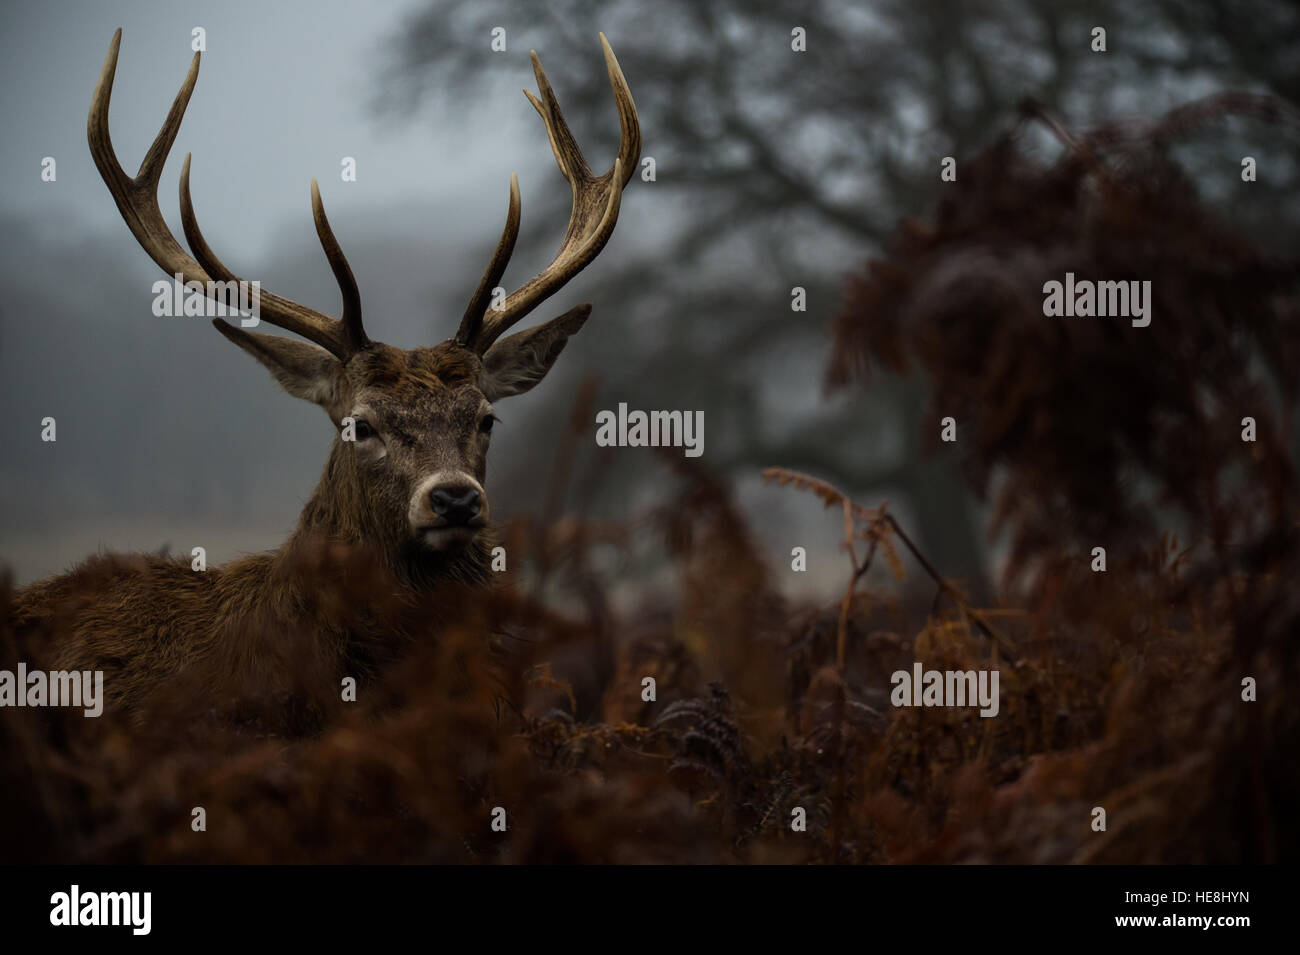 Red deer in Richmond park, London, England Stock Photo